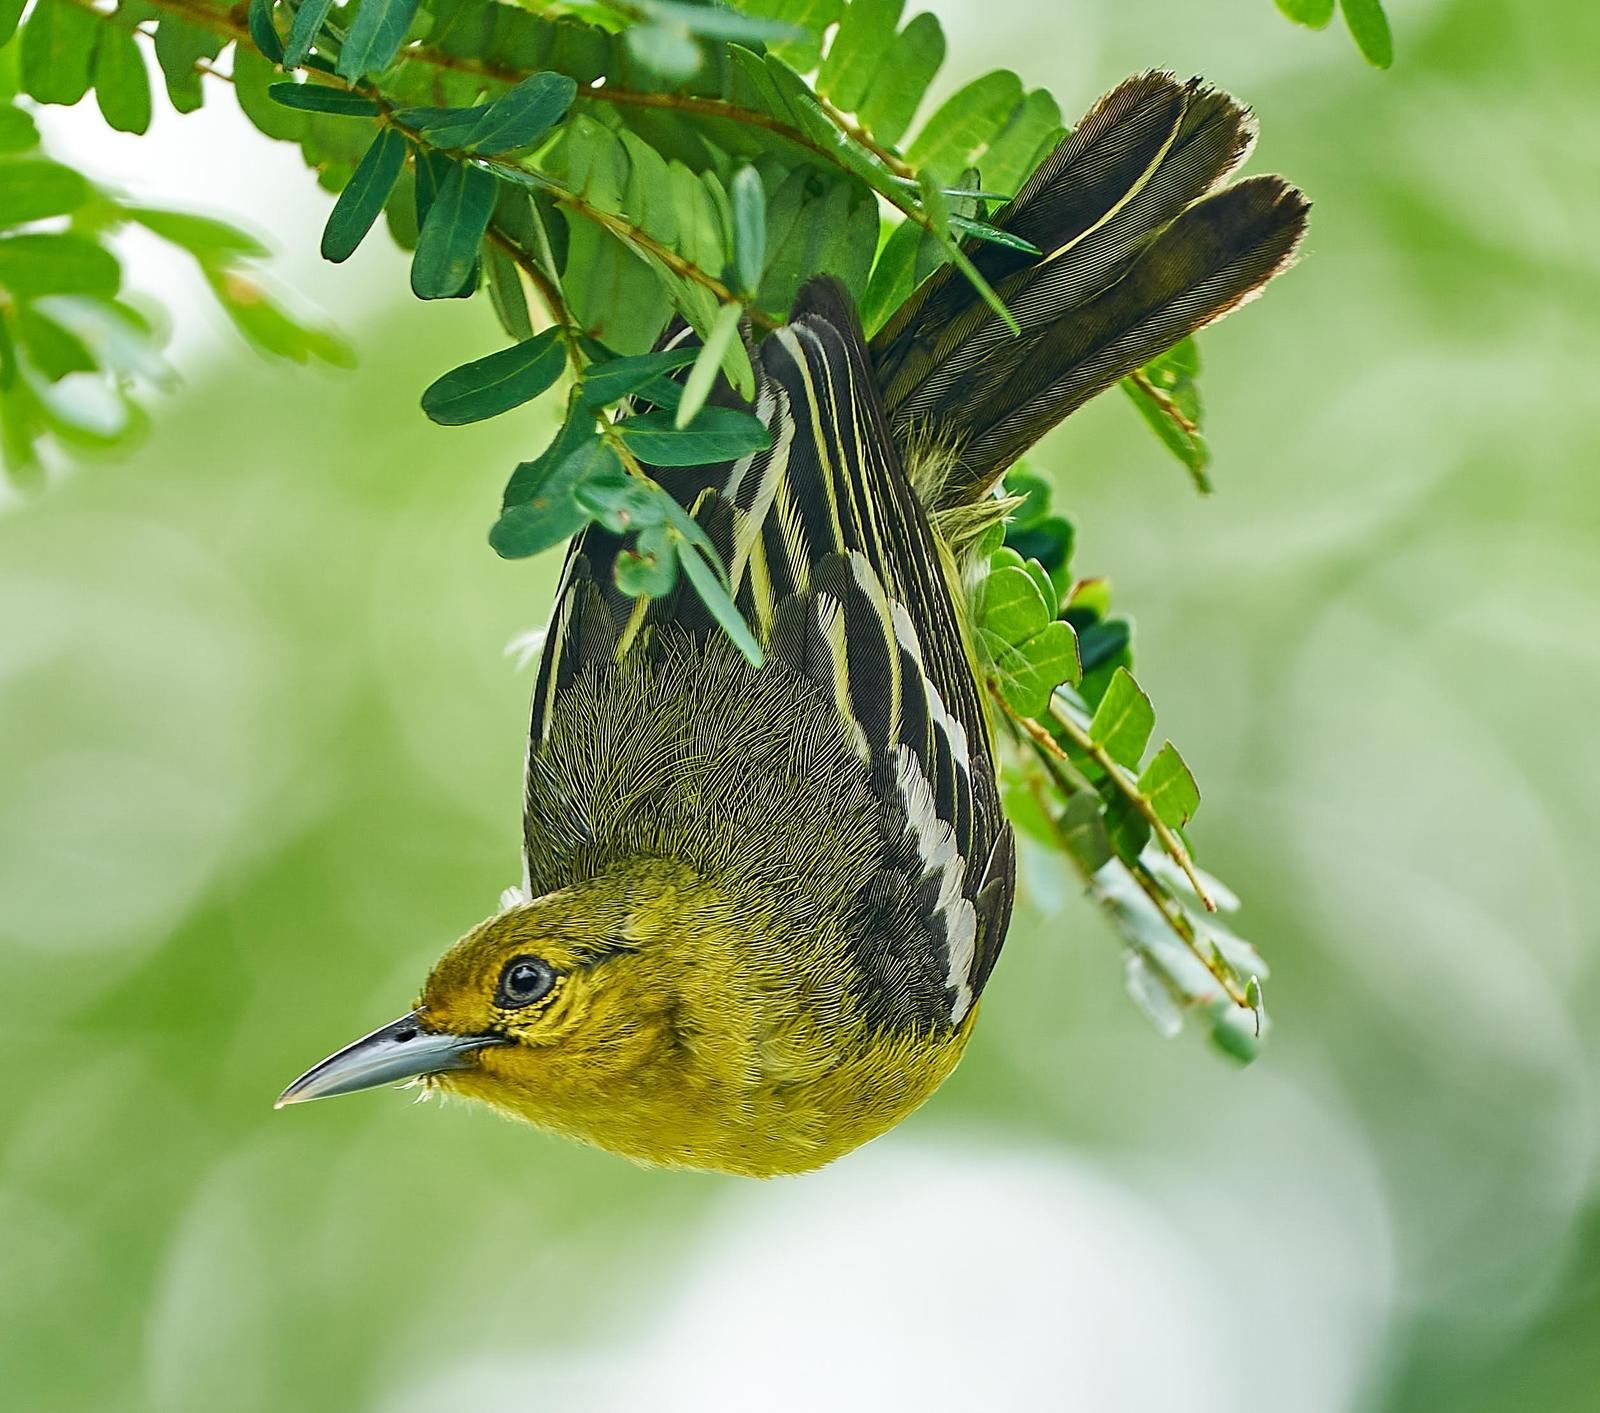 Common Iora Photo by Steven Cheong